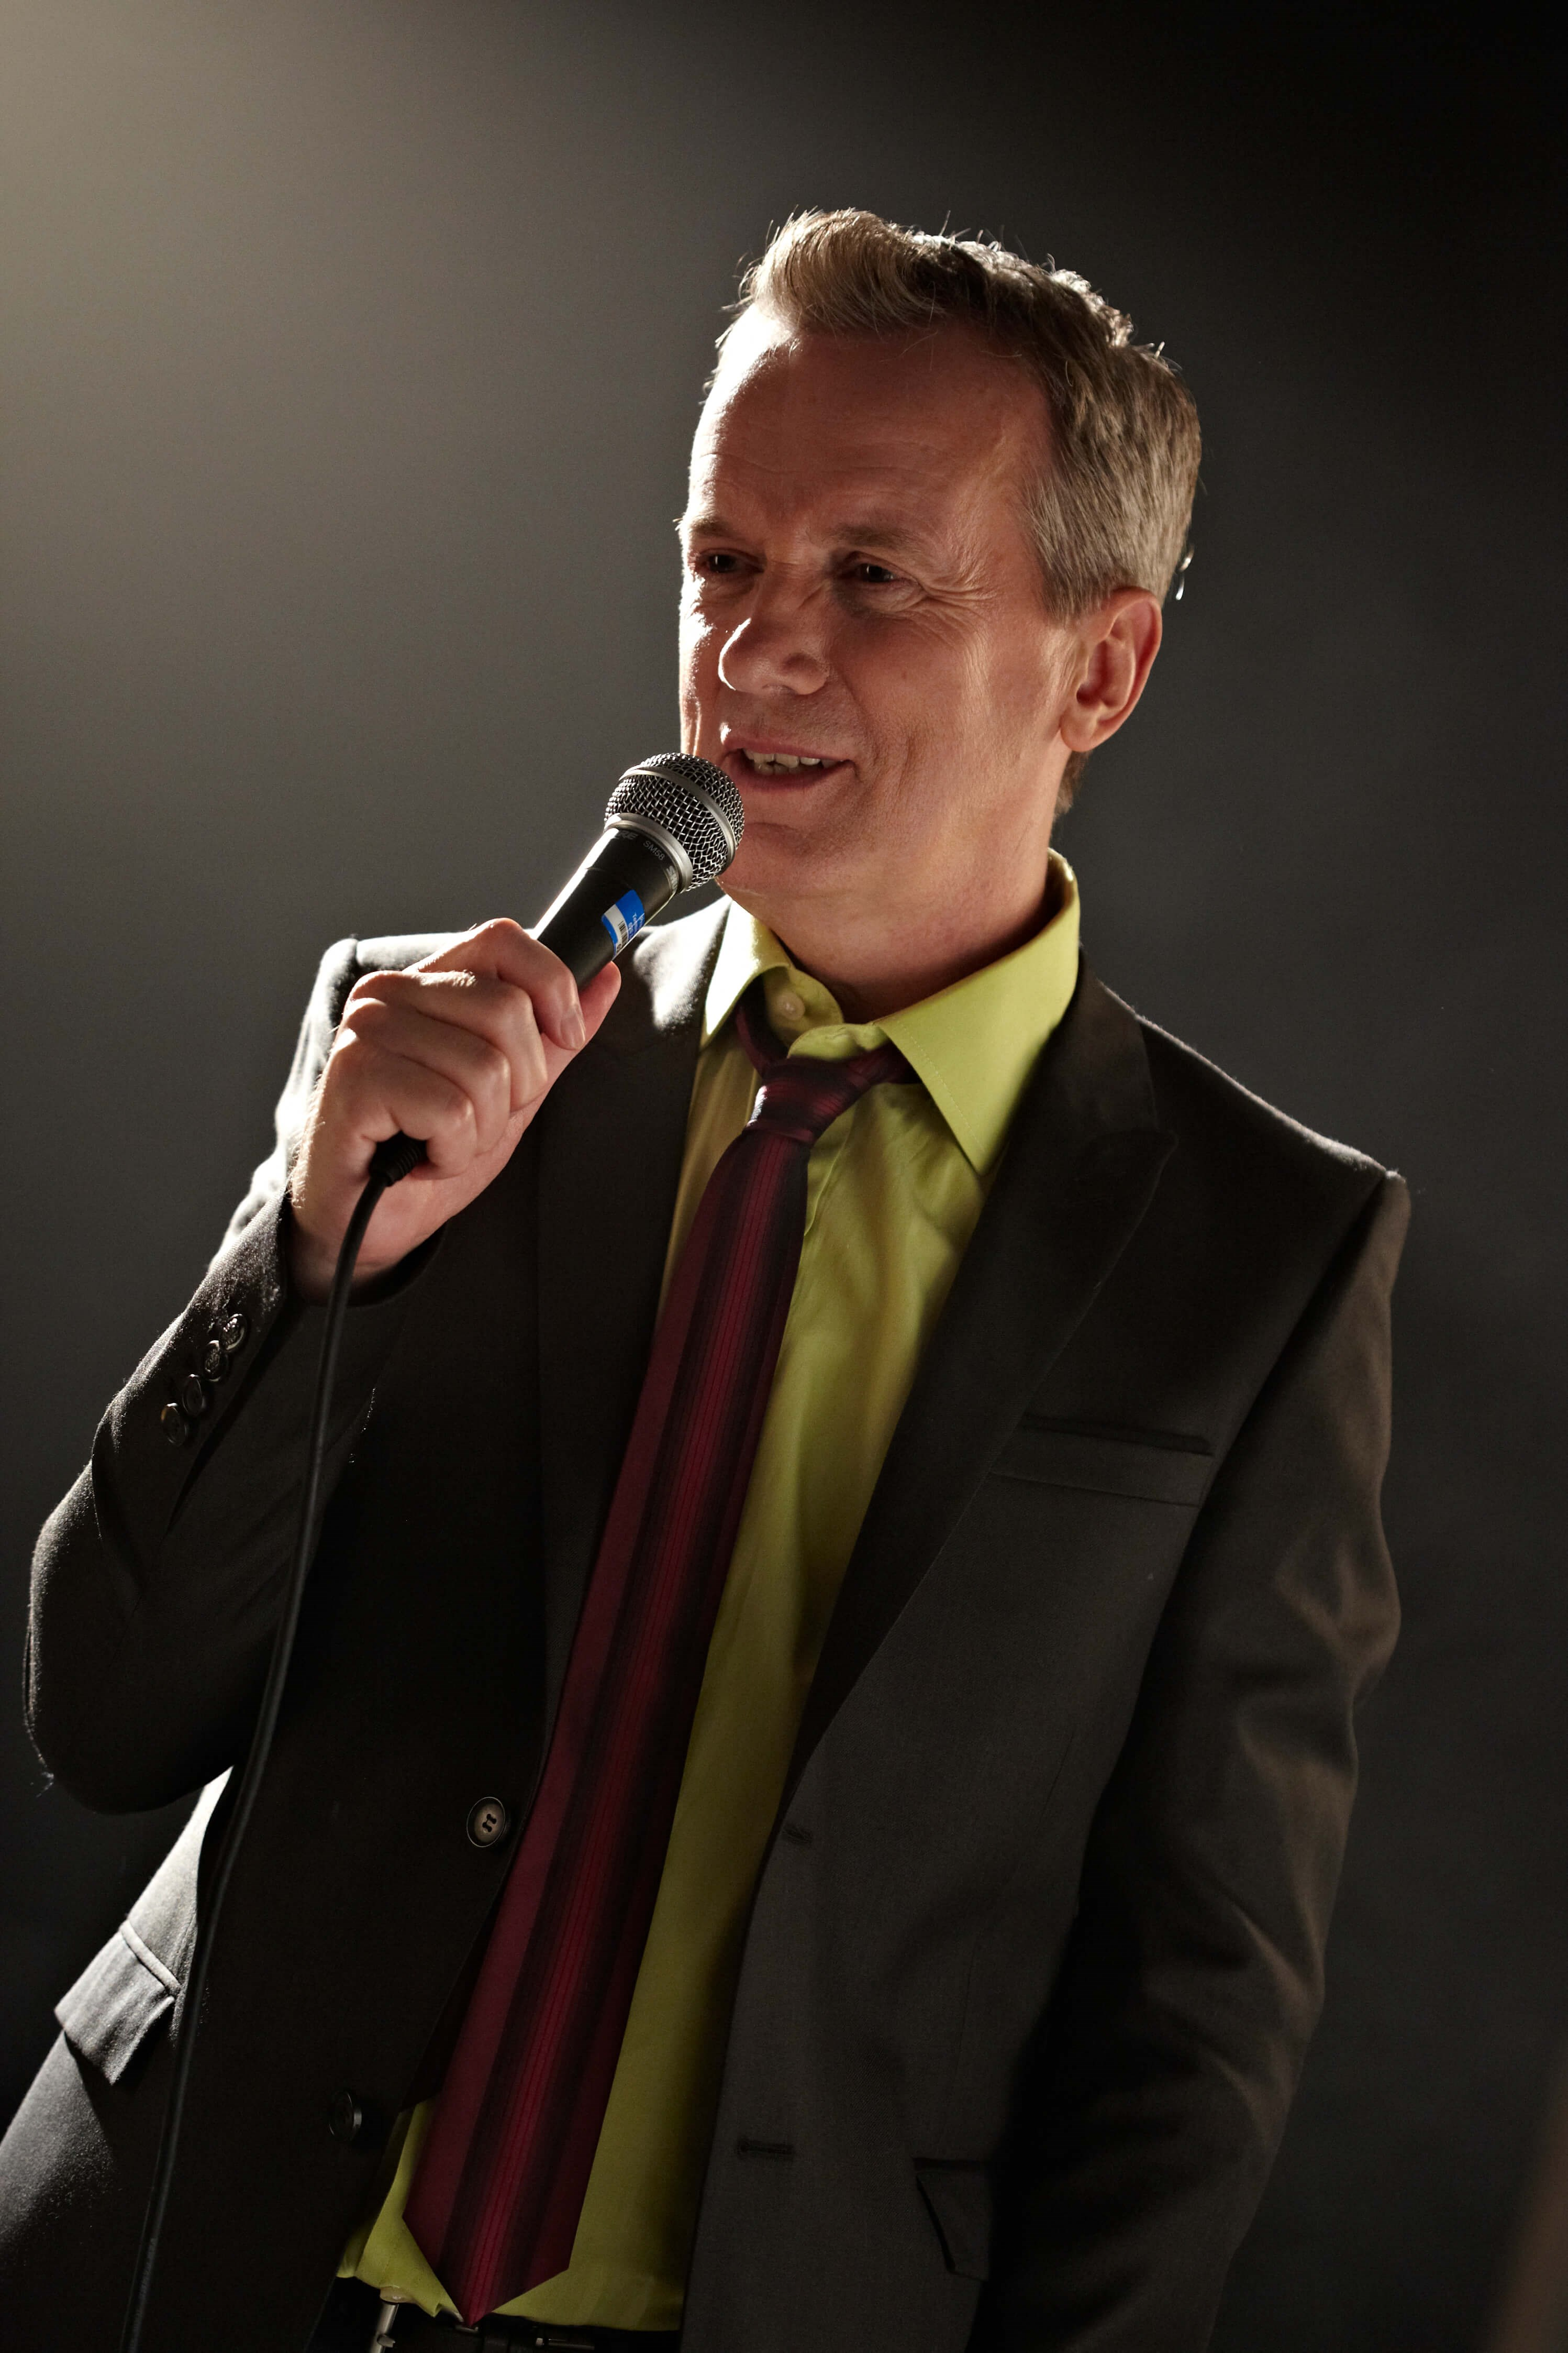 Frank Skinner to perform new stand-up show in Dudley